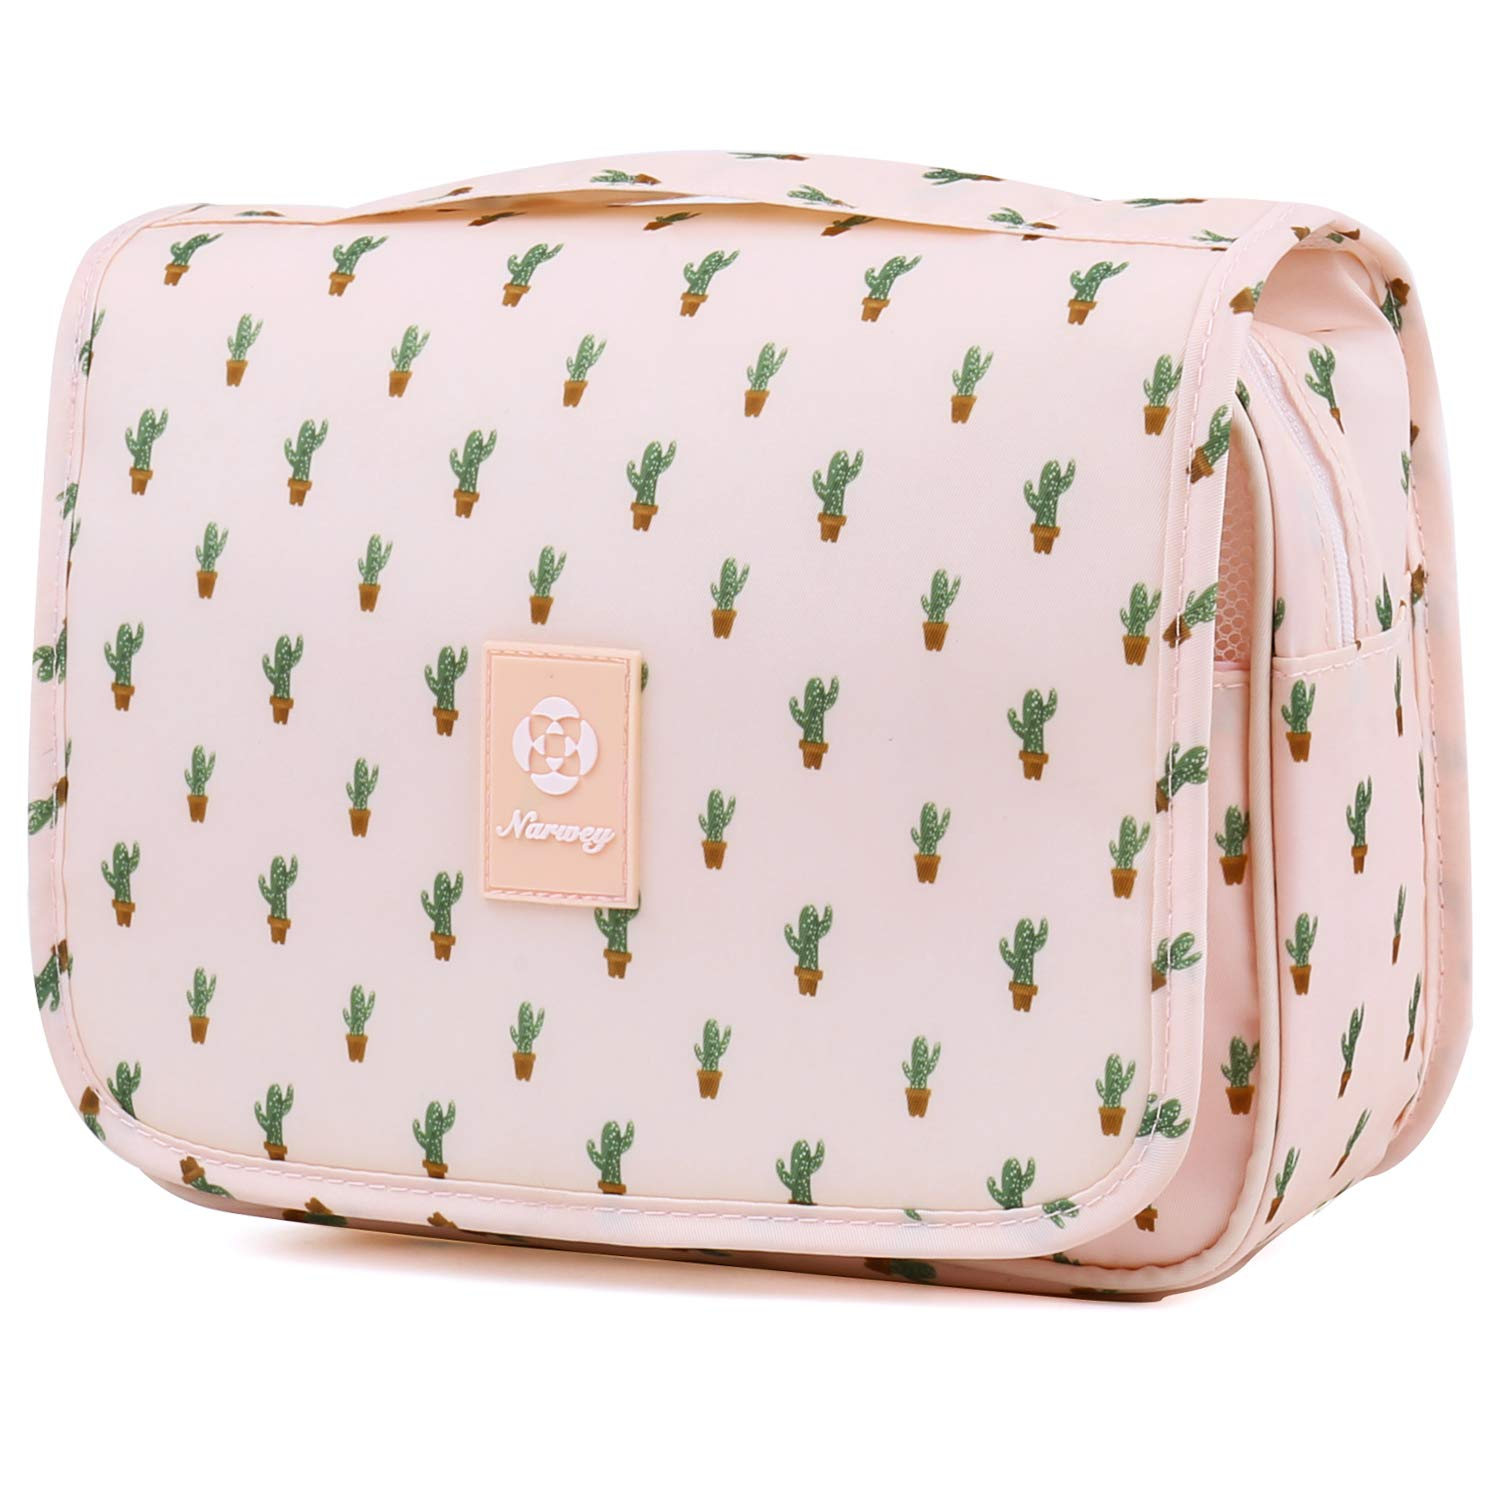 Hanging Travel Toiletry Bag Cosmetic Make up Organizer for Women and Girls Waterproof (Cactus)